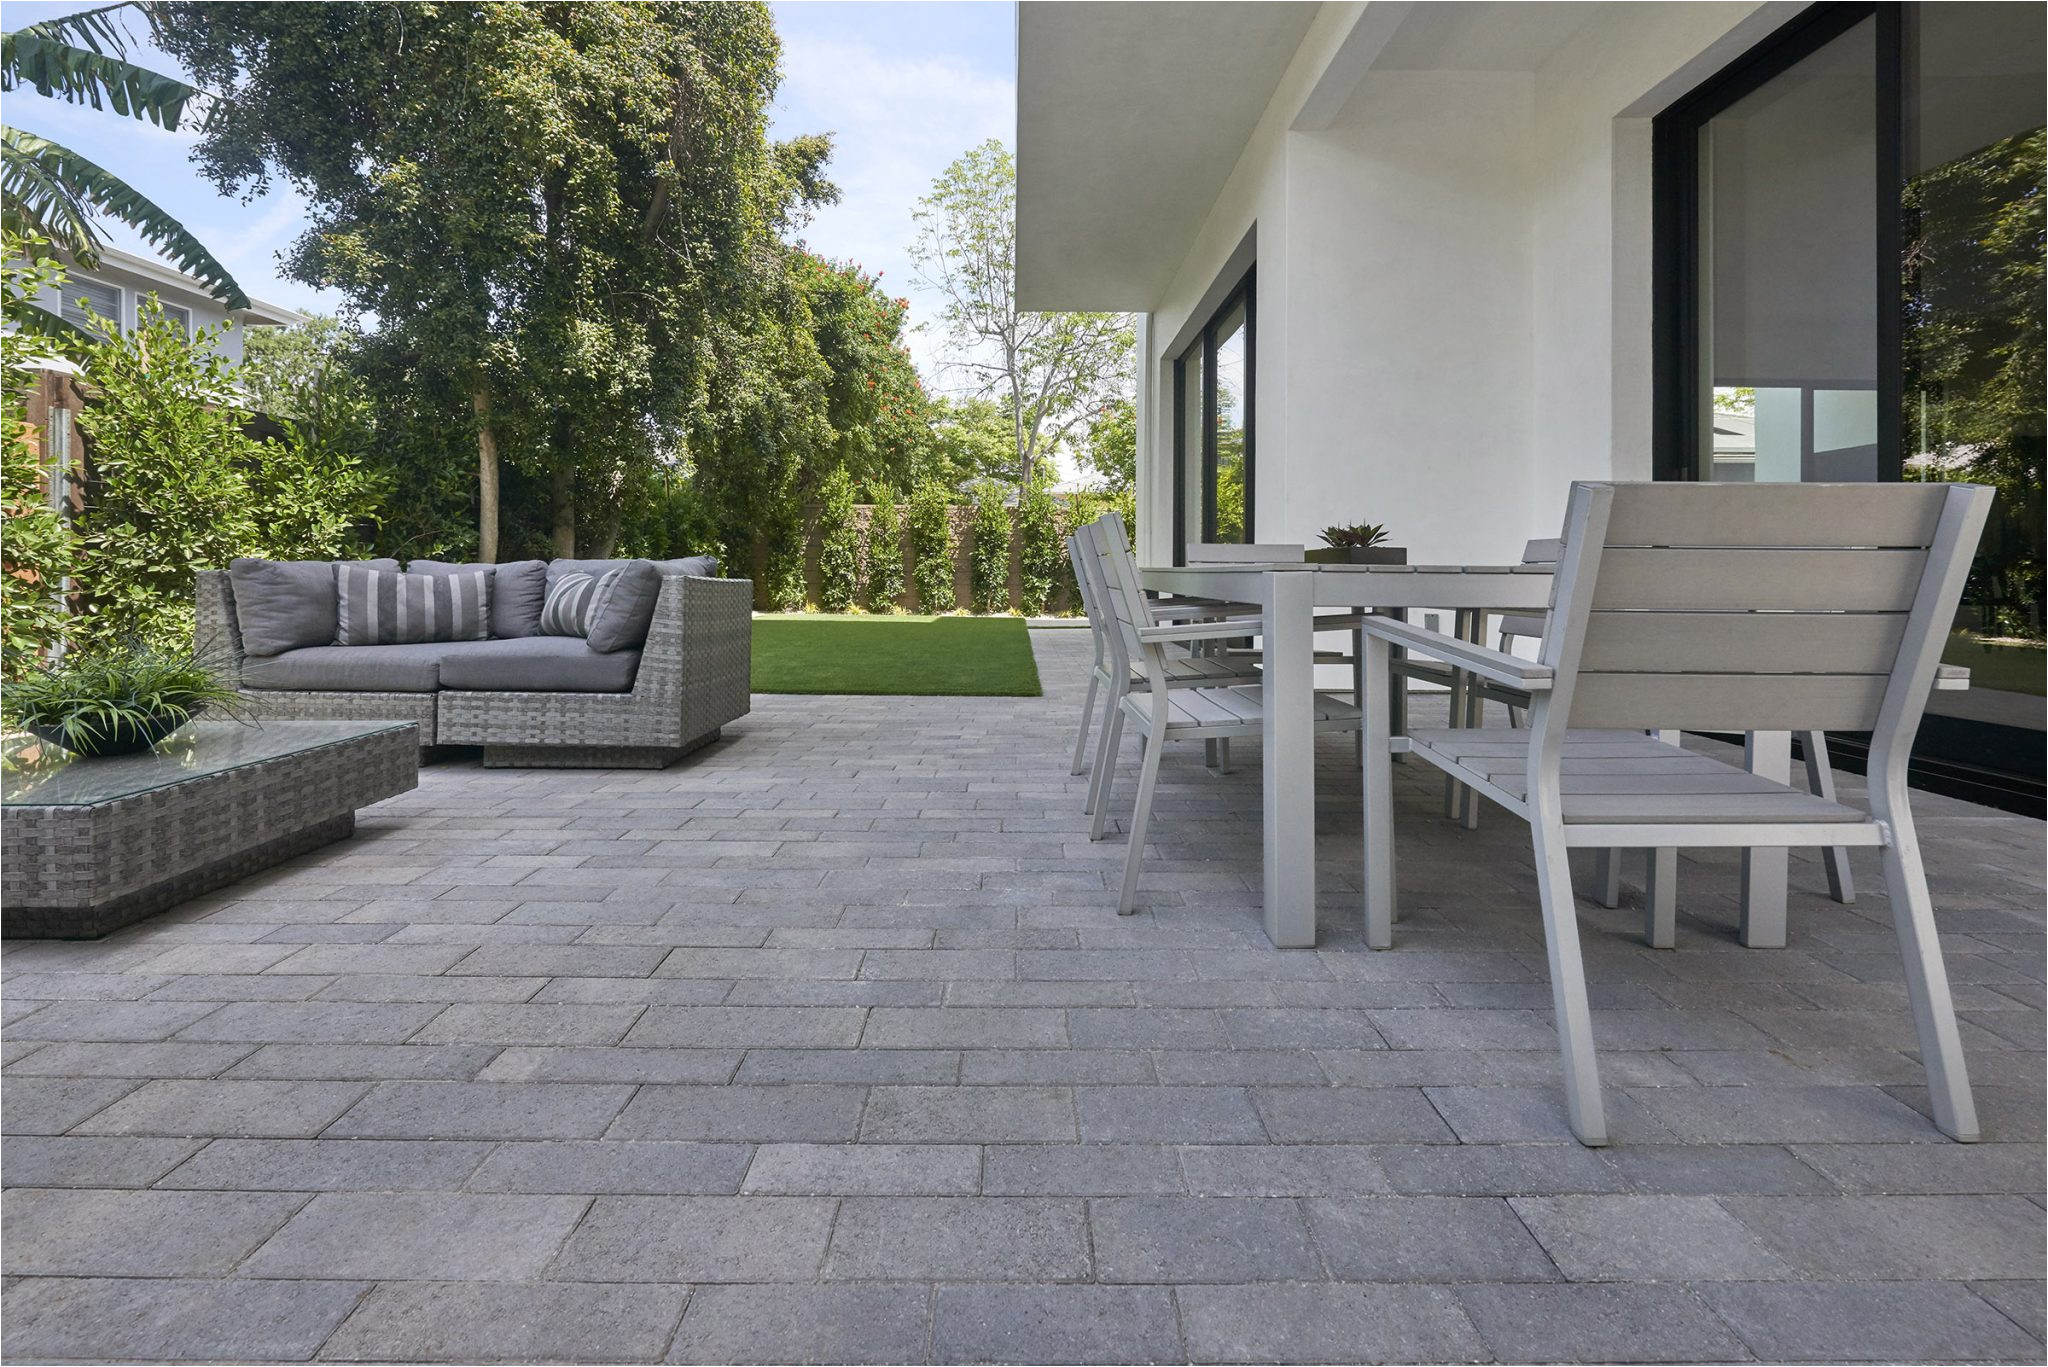 Belgard Pavers Price List 2019 Pavers Cost 2019 Installation Price Guide Install It Direct